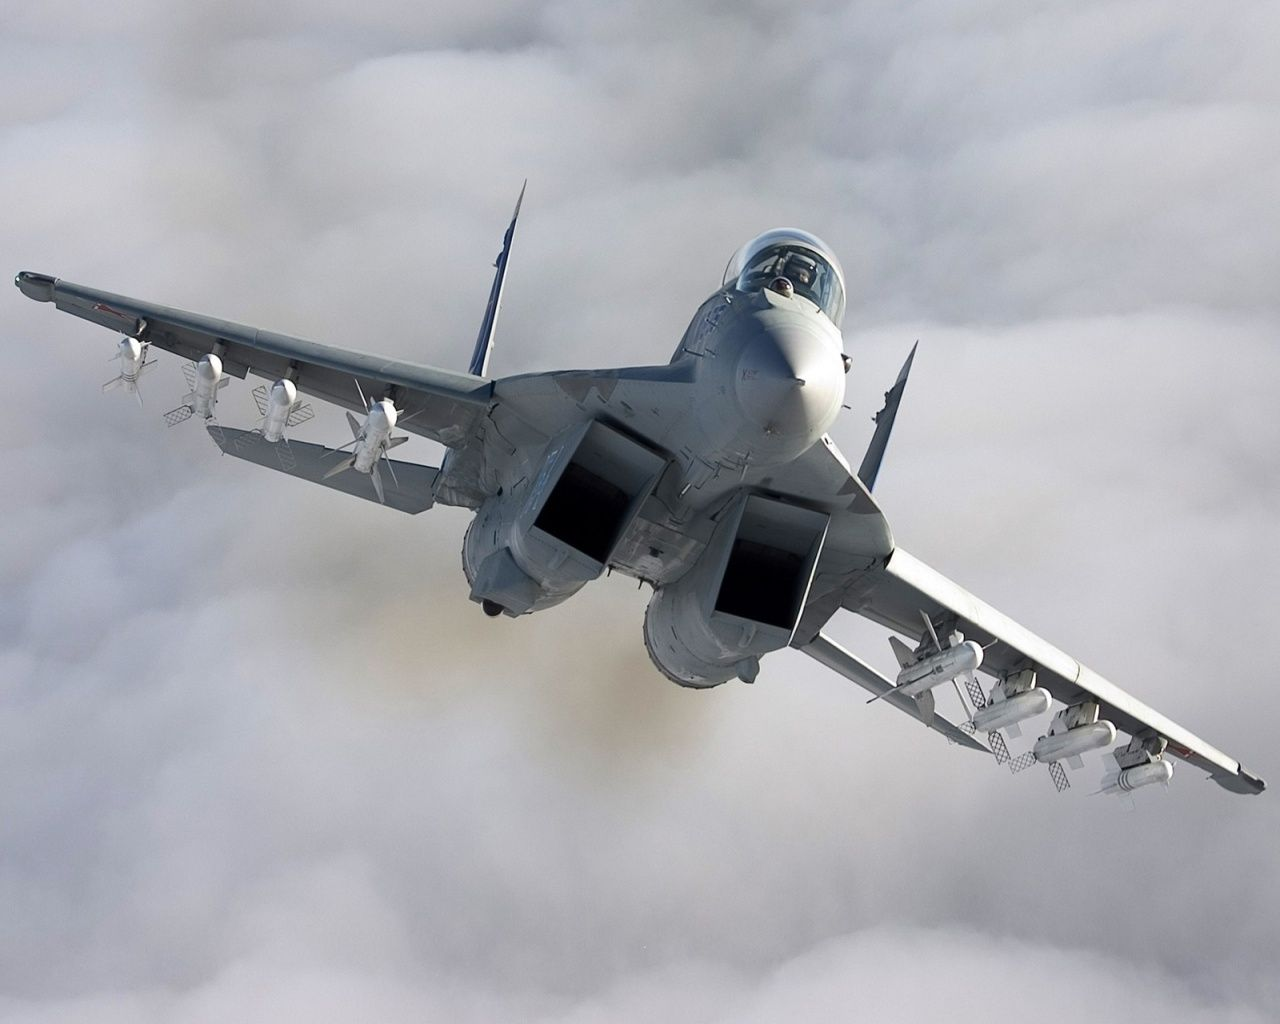 44 Mig 35 Wallpapers On Wallpapersafari Images, Photos, Reviews